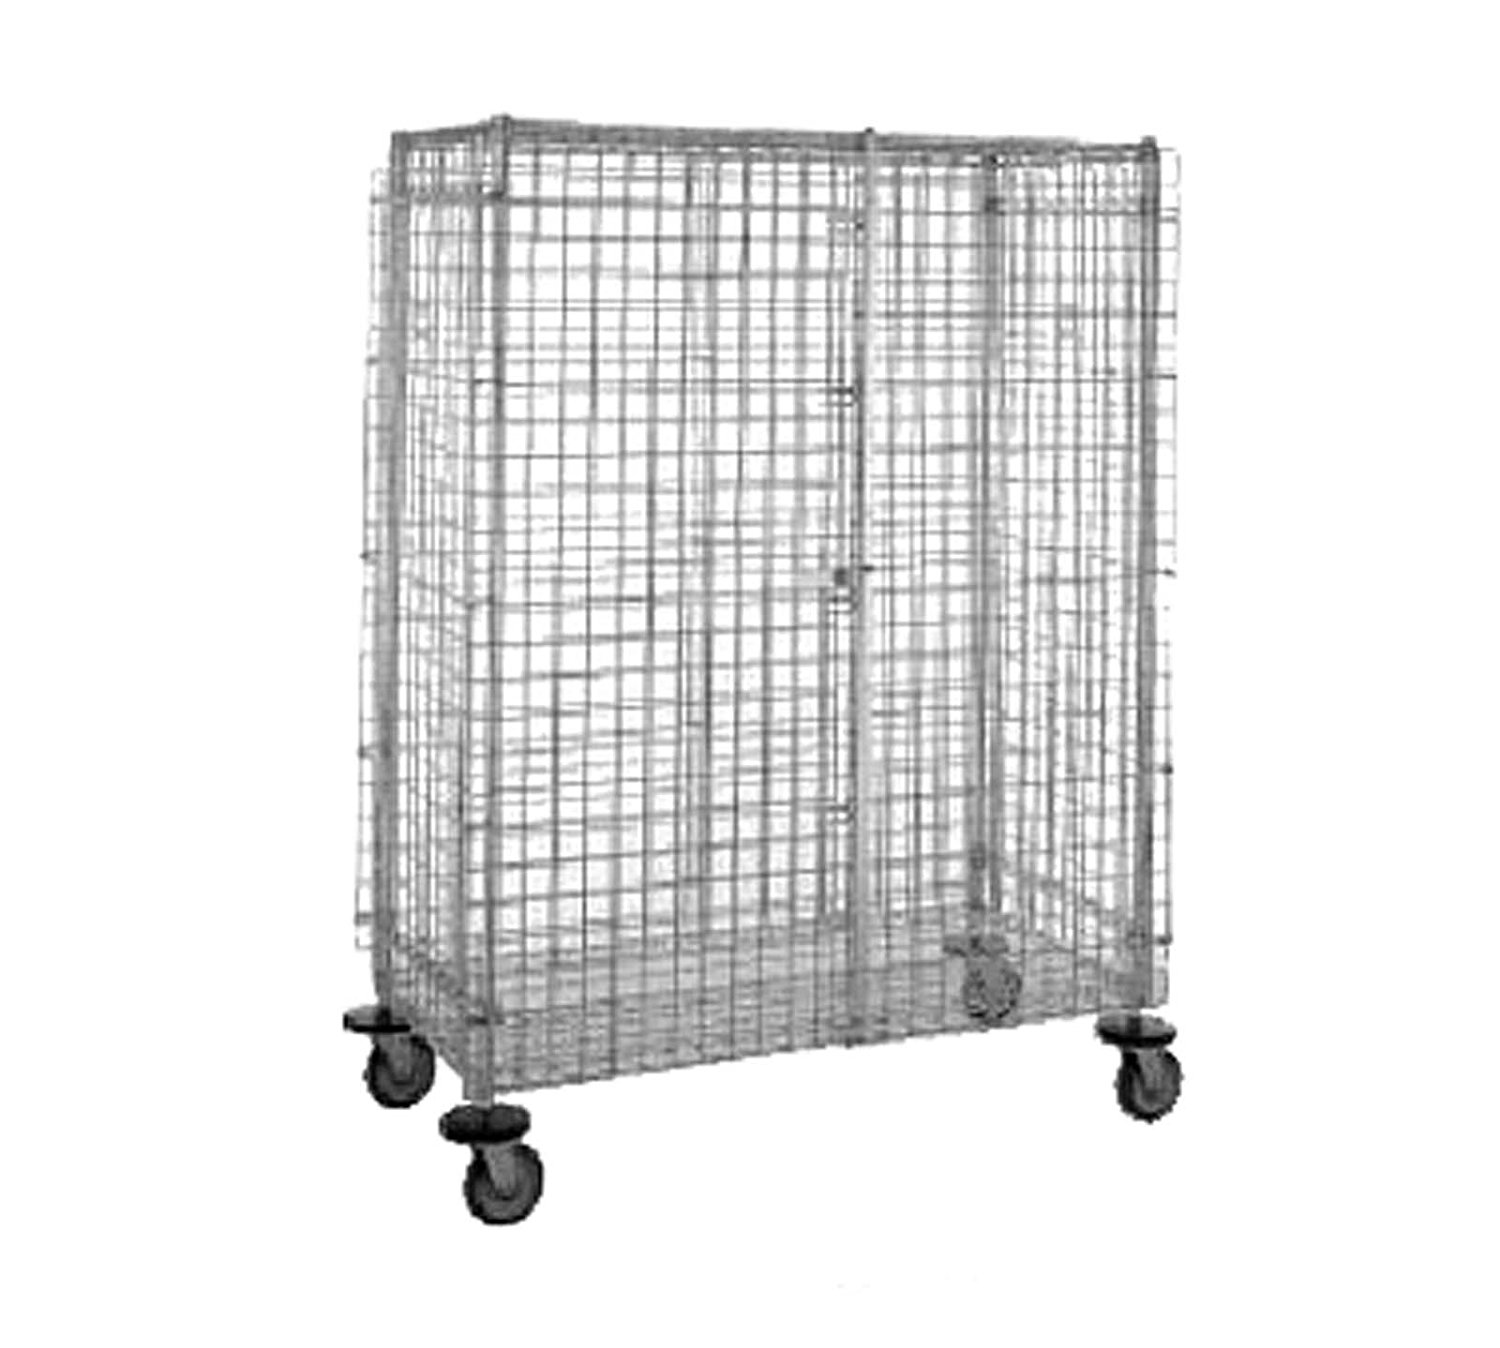 "Metro S/S 27-1/2""W x 52-3/4""L Mobile Security Unit"